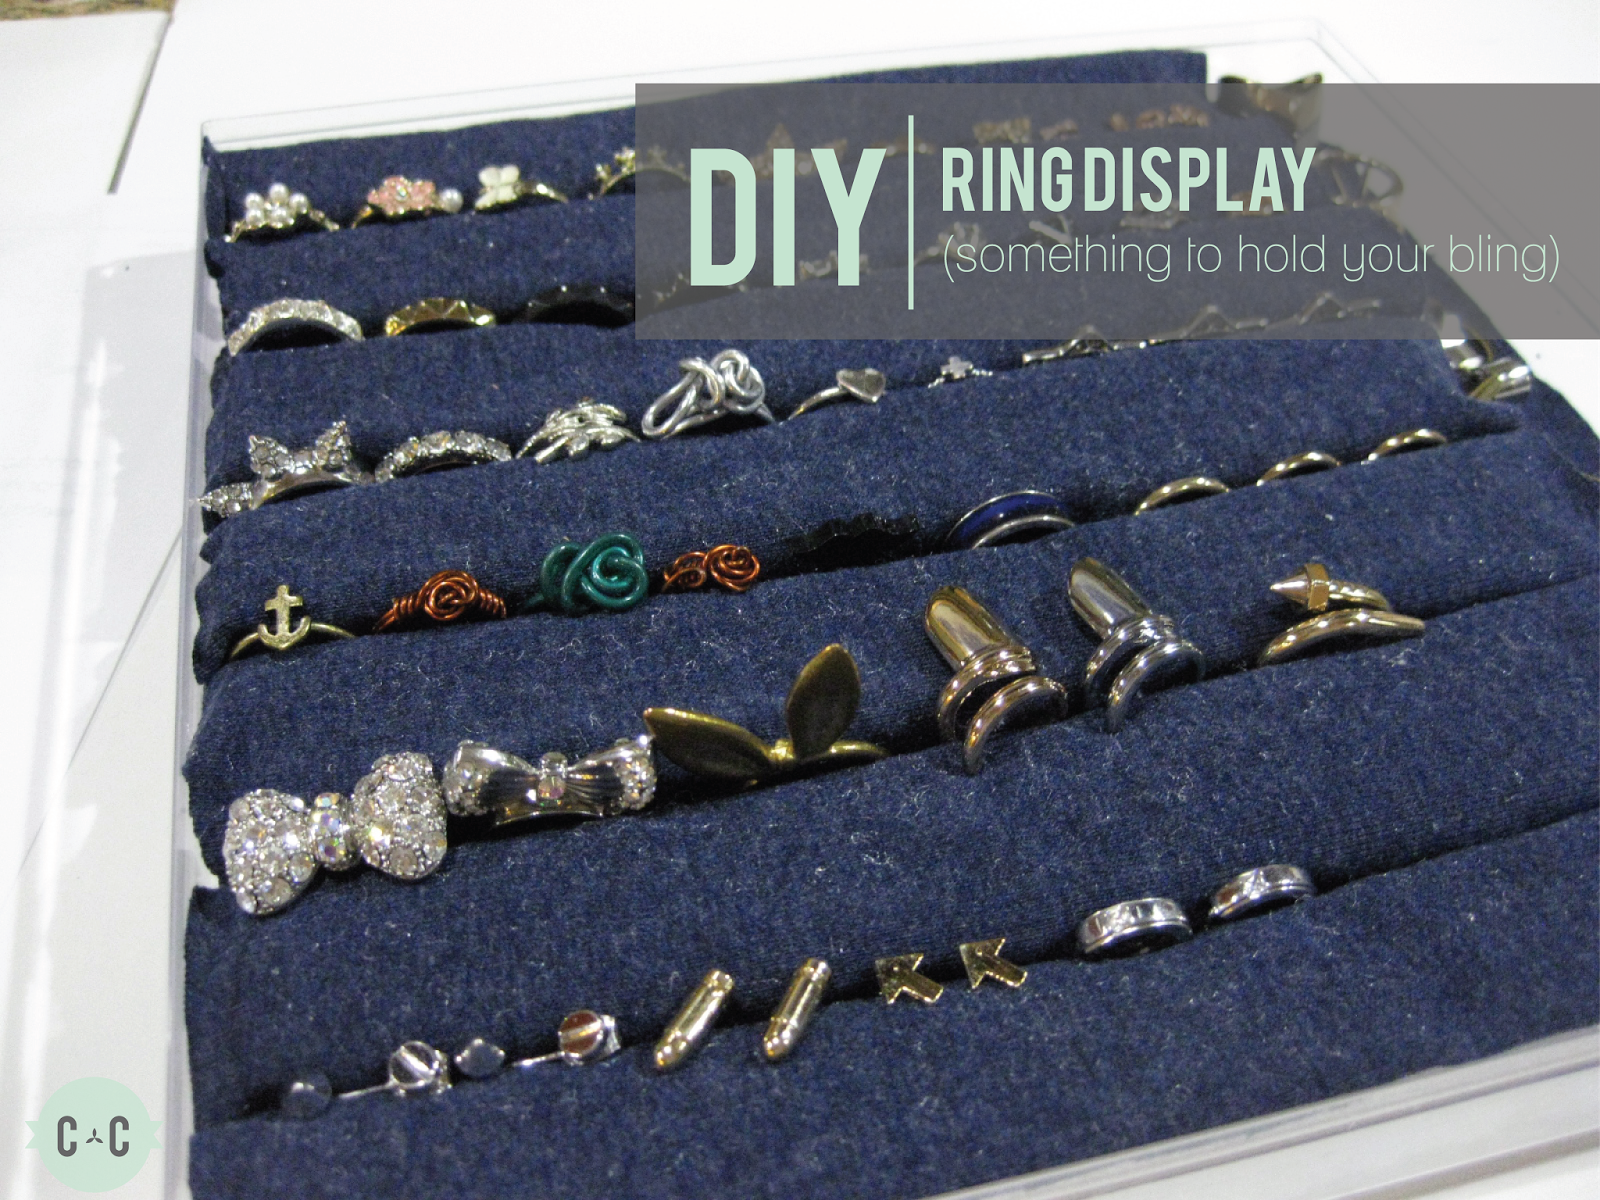 Diy projects how to make ring organizers pretty designs diy ring display solutioingenieria Image collections